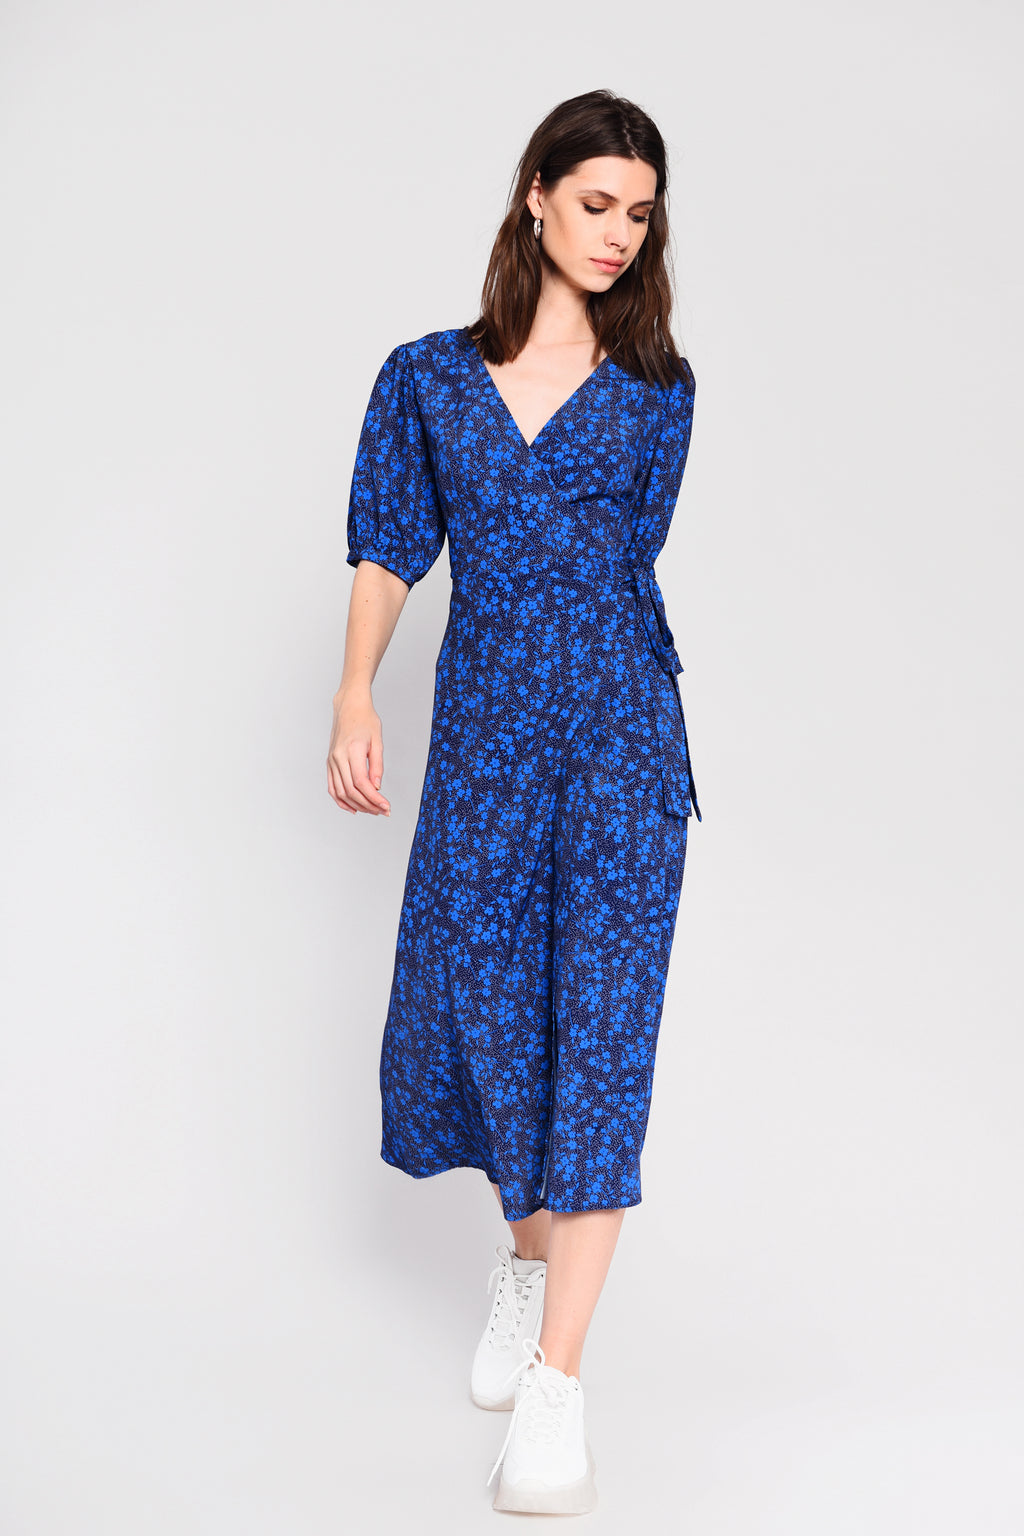 ROXIE ditsy floral midi wrap dress - blue